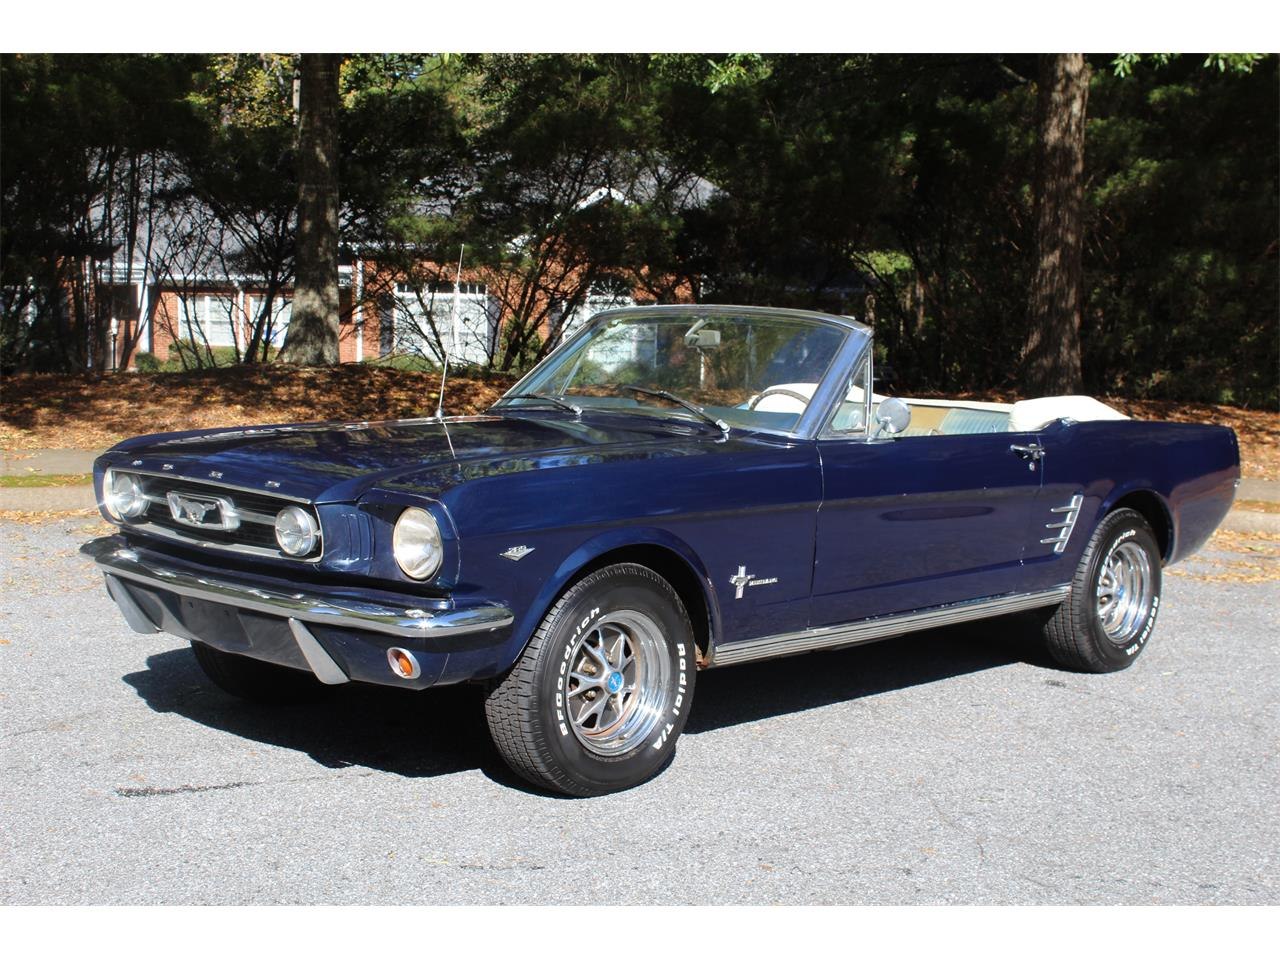 Ford Mustang Pony v8 289 1966 prix tout compris 1966